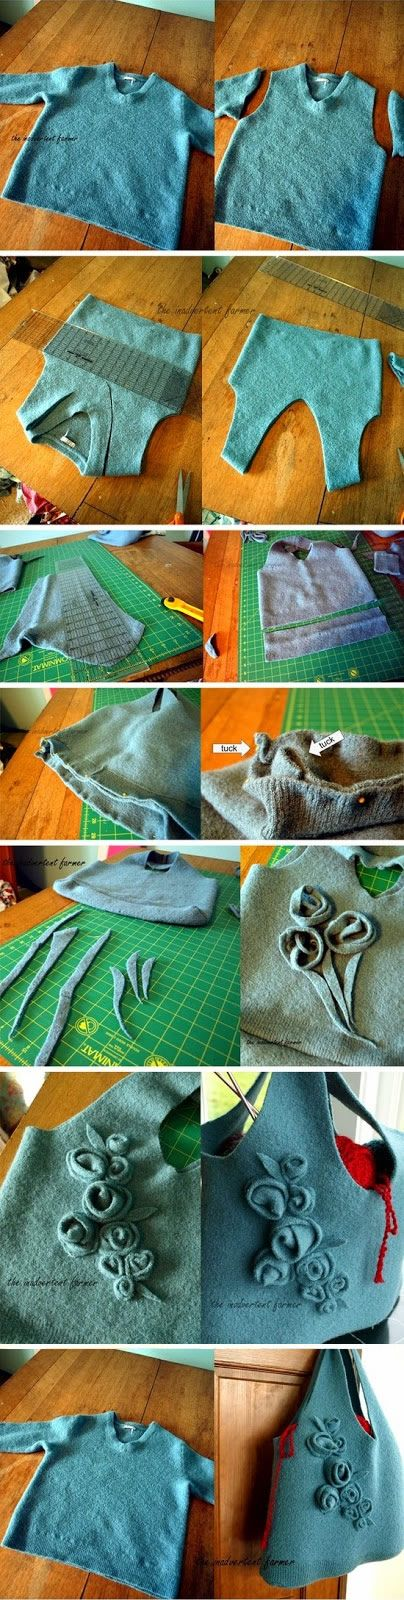 Turn old sweater into a purse